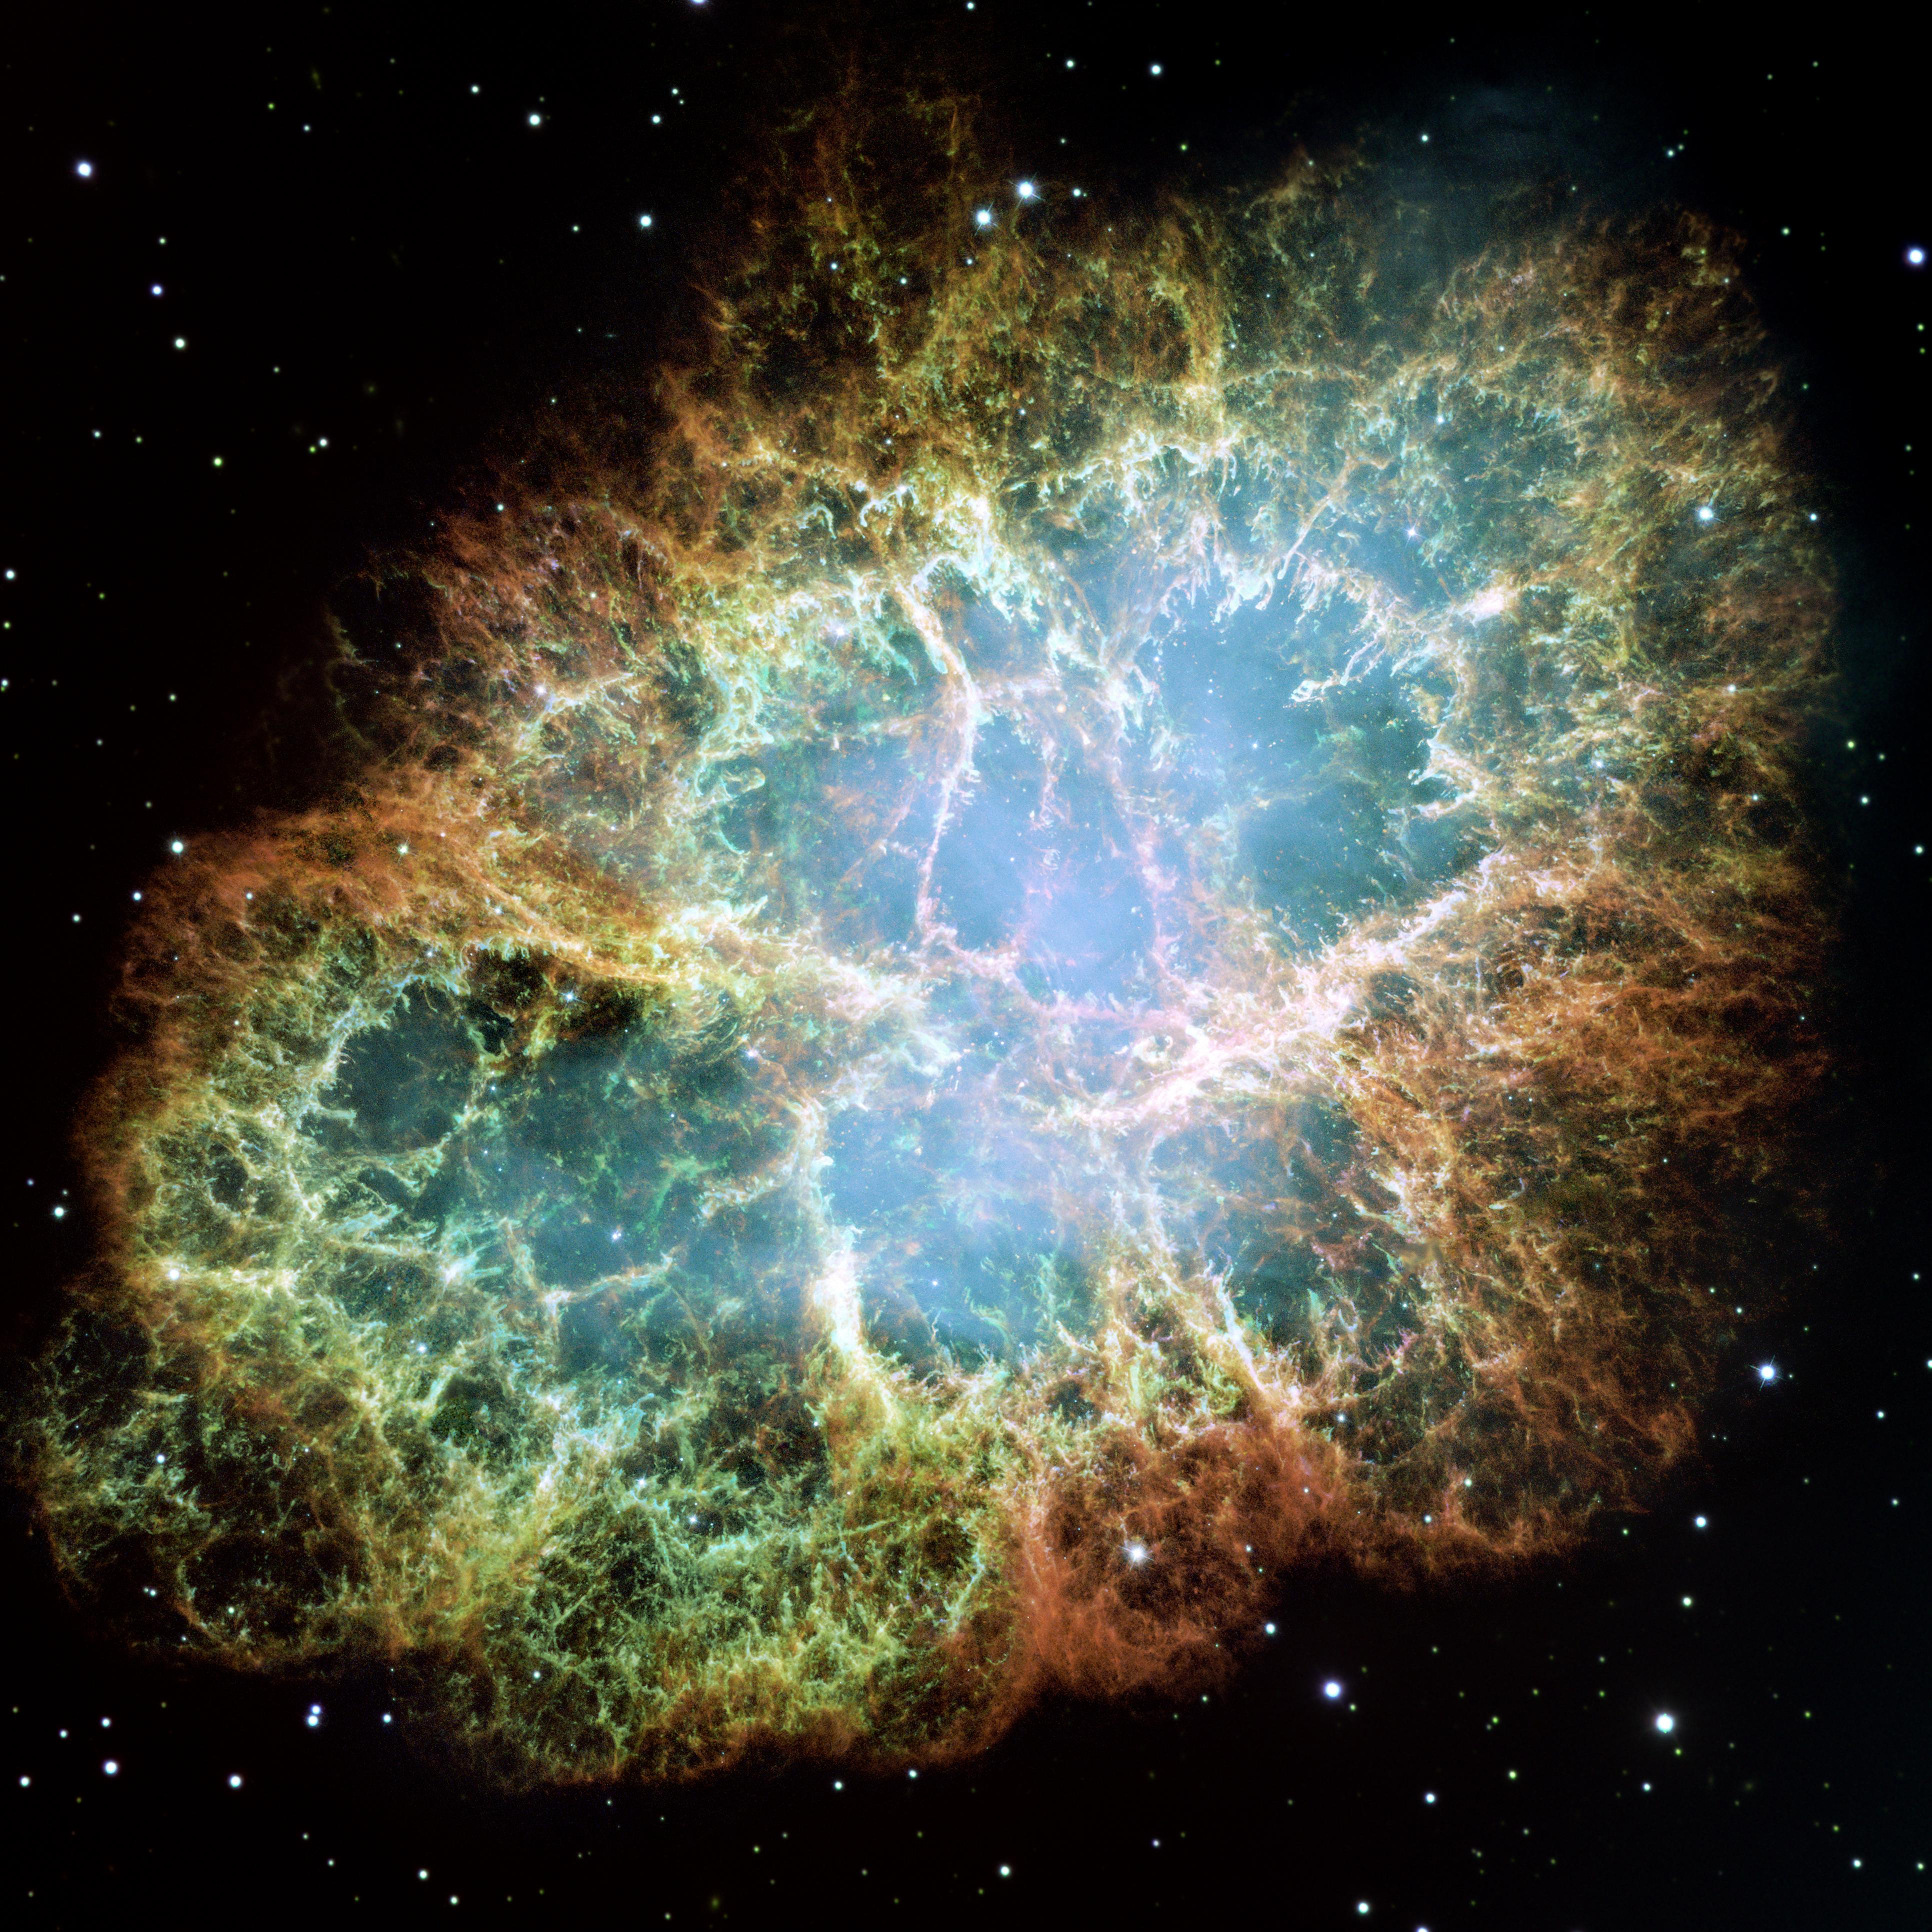 The best-known wind nebula is the Crab Nebula, located about 6,500light-years away in the constellation Taurus. At the centre is a rapidly spinning neutron star that accelerates charged particles like electrons to nearly the speed of light. As they whirl around magnetic field lines, the particles emit a bluish glow. This image is a composite of Hubble observations taken in late 1999 and early 2000. The Crab Nebula spans about 11light-years. Image credits: NASA, ESA, J. Hester and A. Loll (Arizona State University).